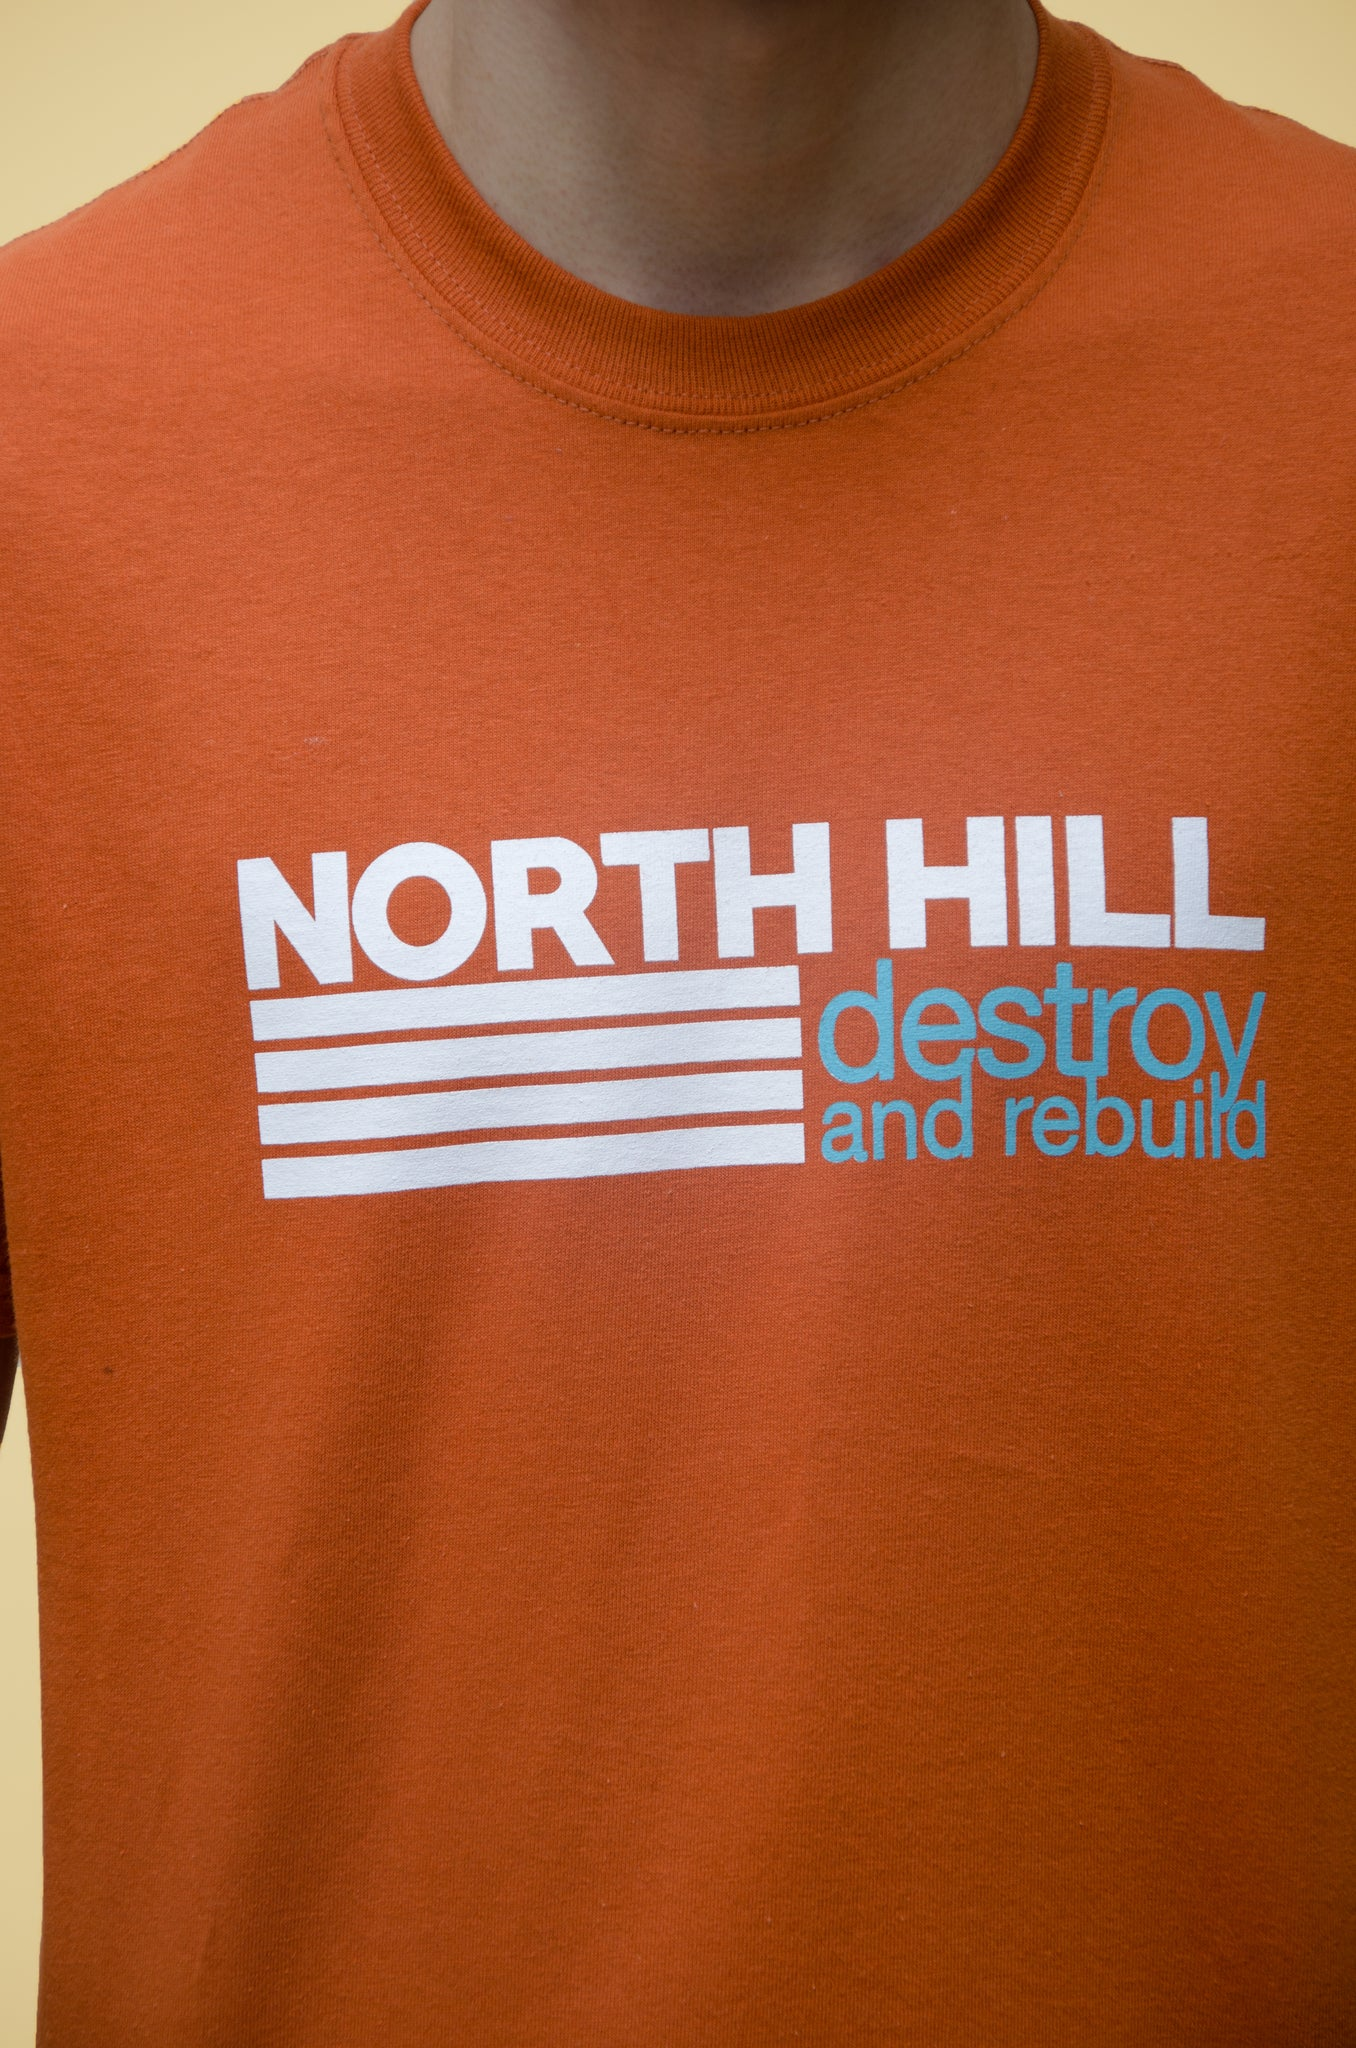 The North Hill Destroy & Rebuild Tee is a made in France t-shirt